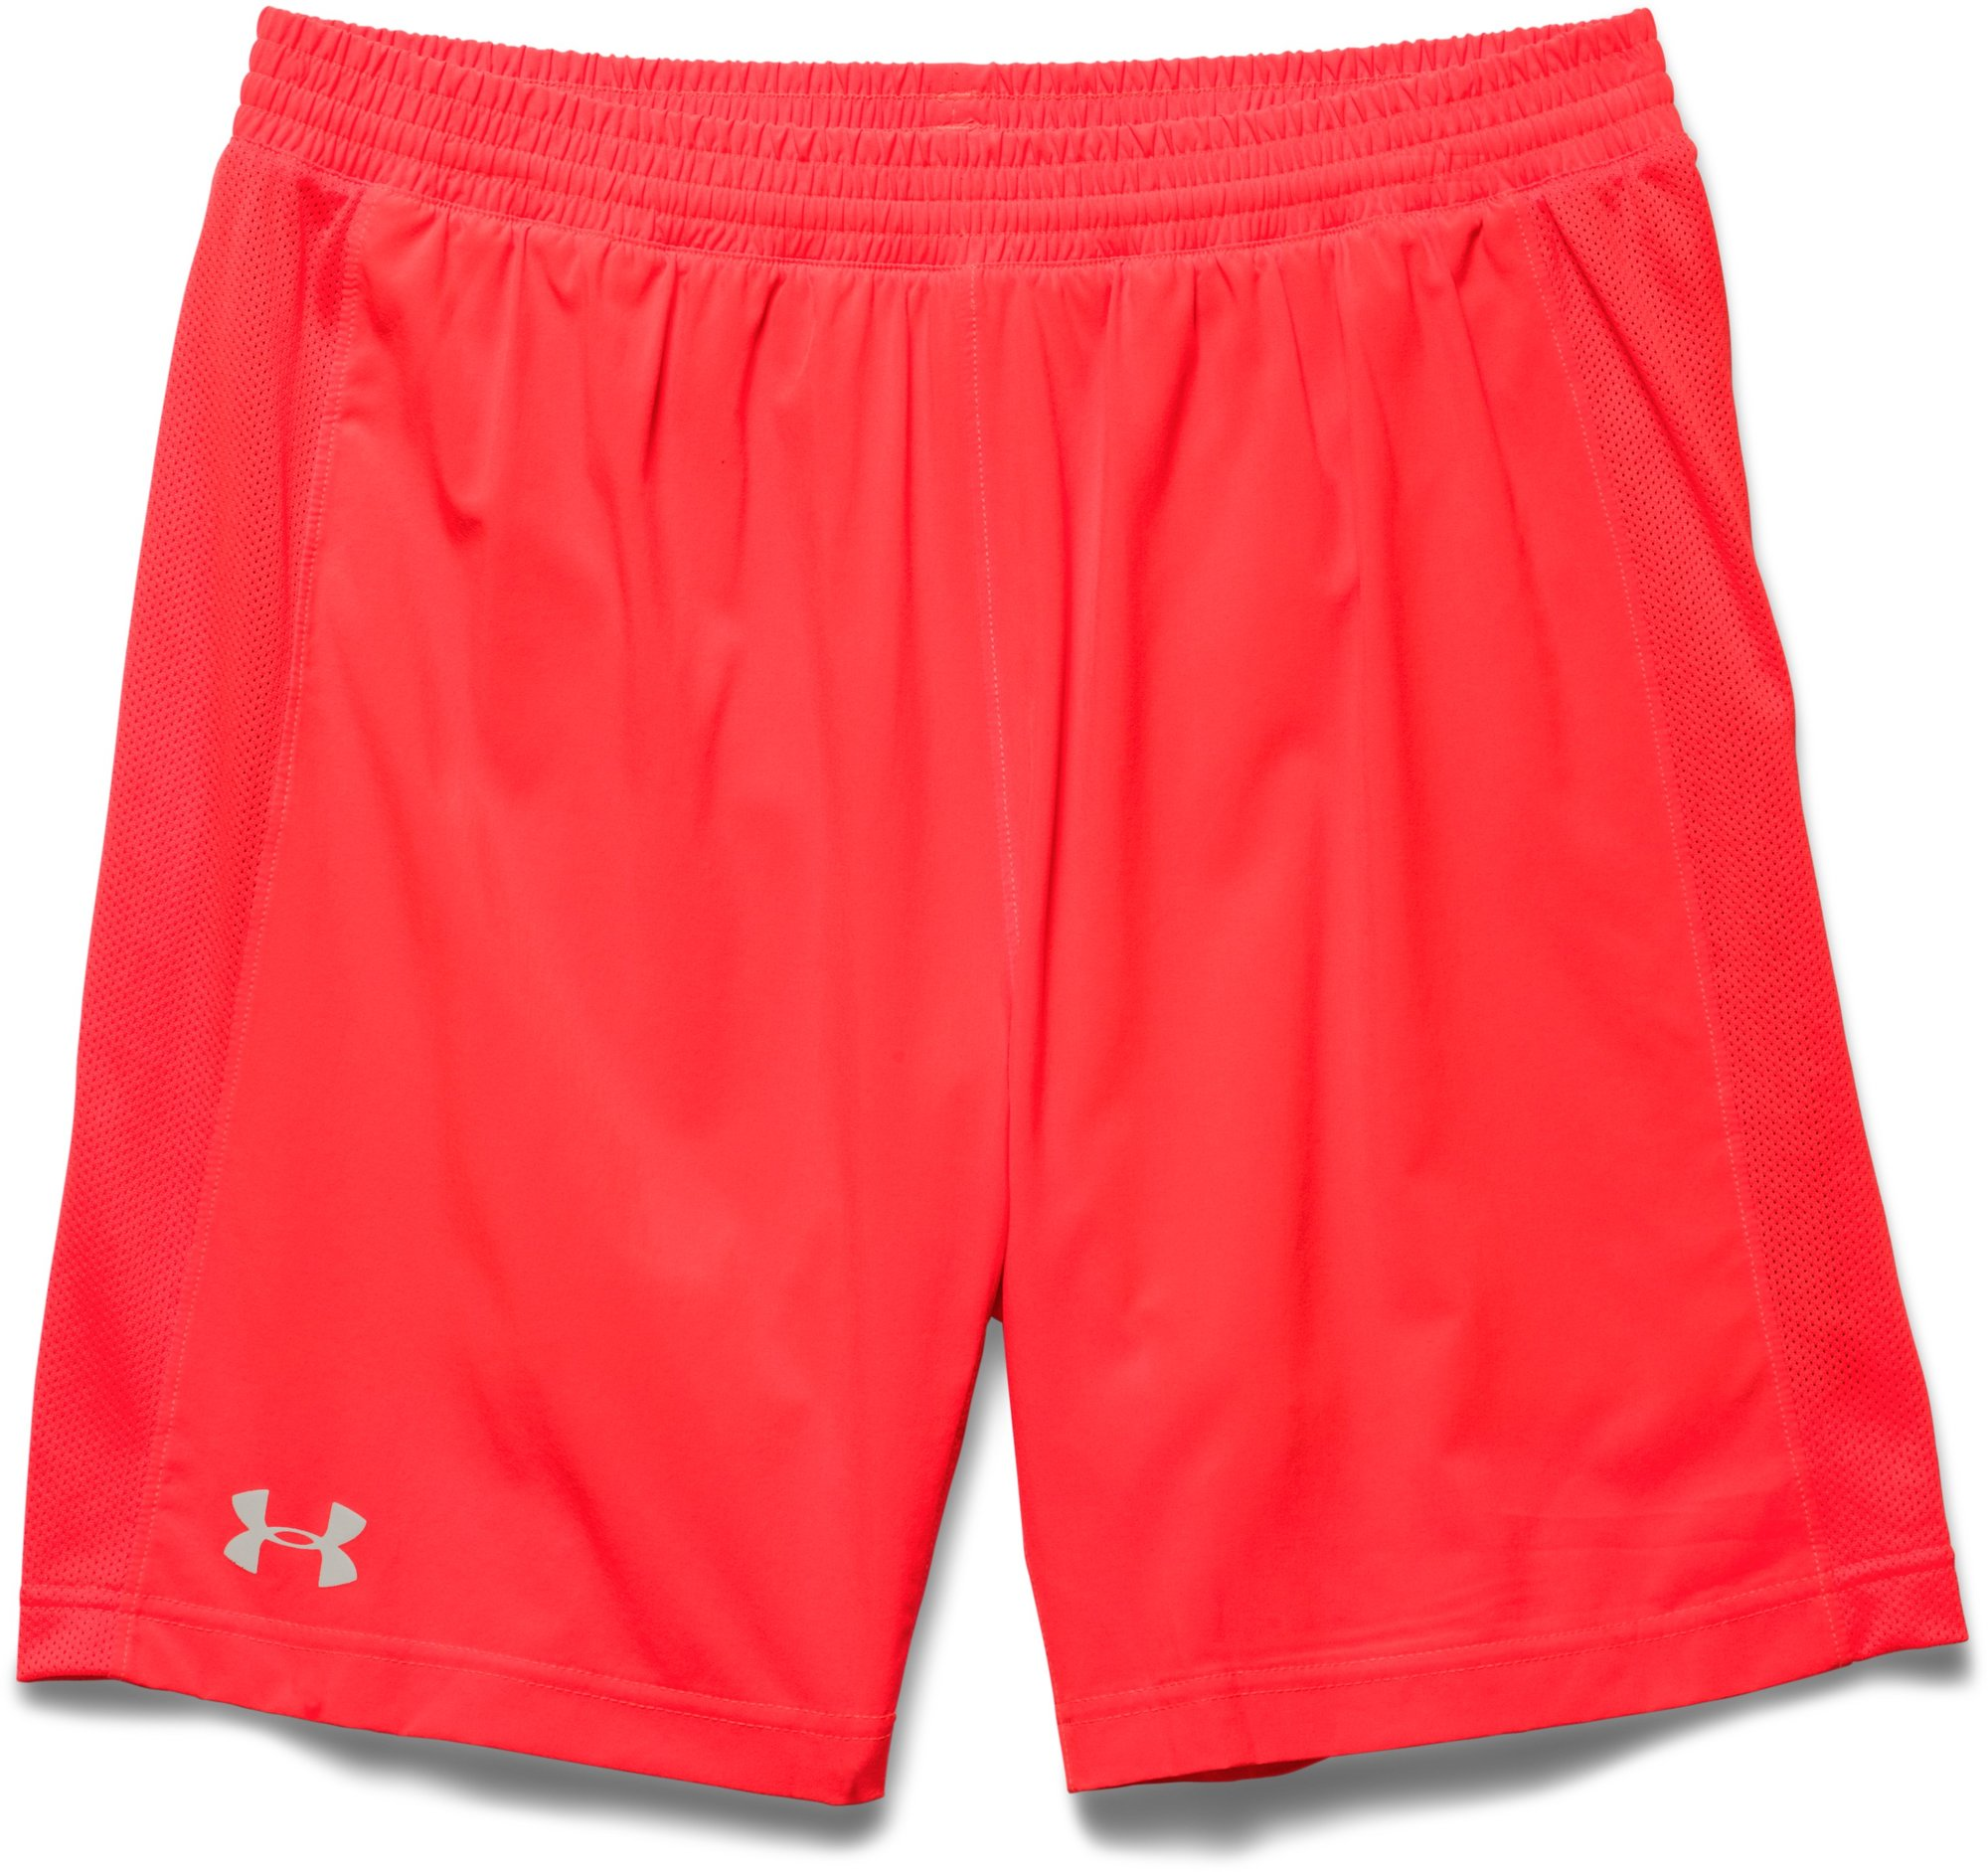 Under Armour Launch 2in1 Short in Orange